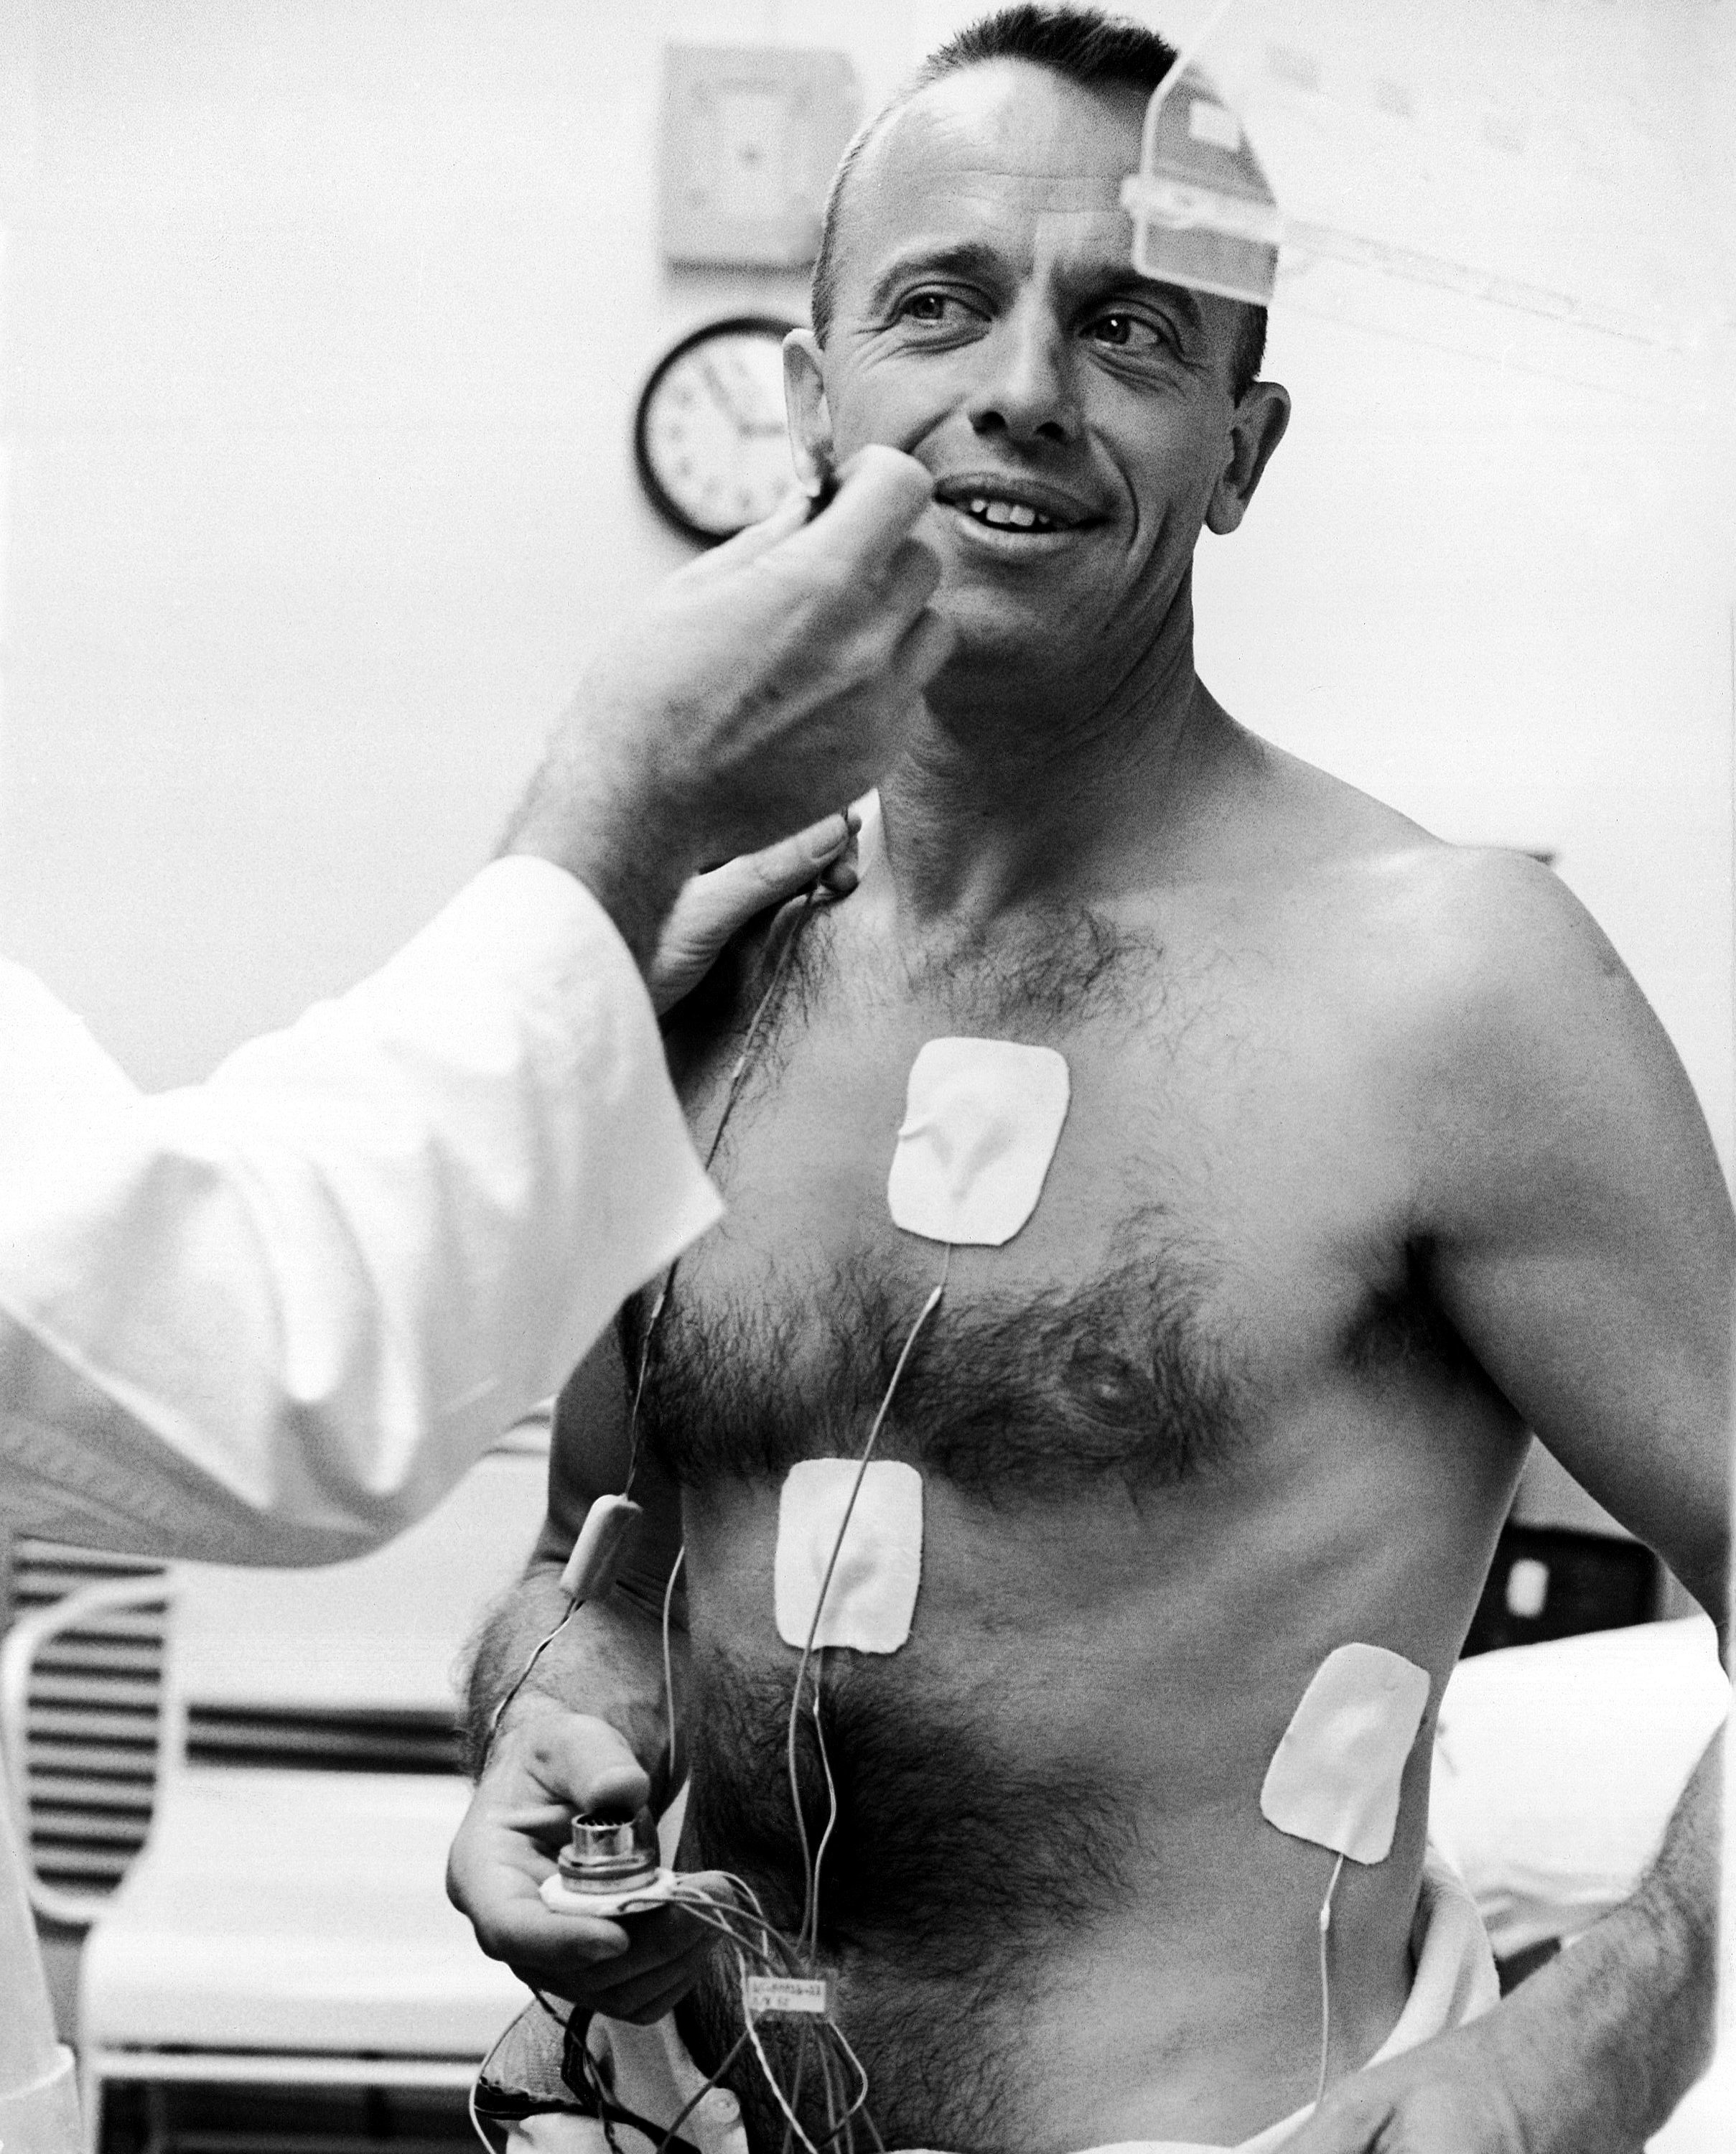 alan shepard before nasa - photo #33